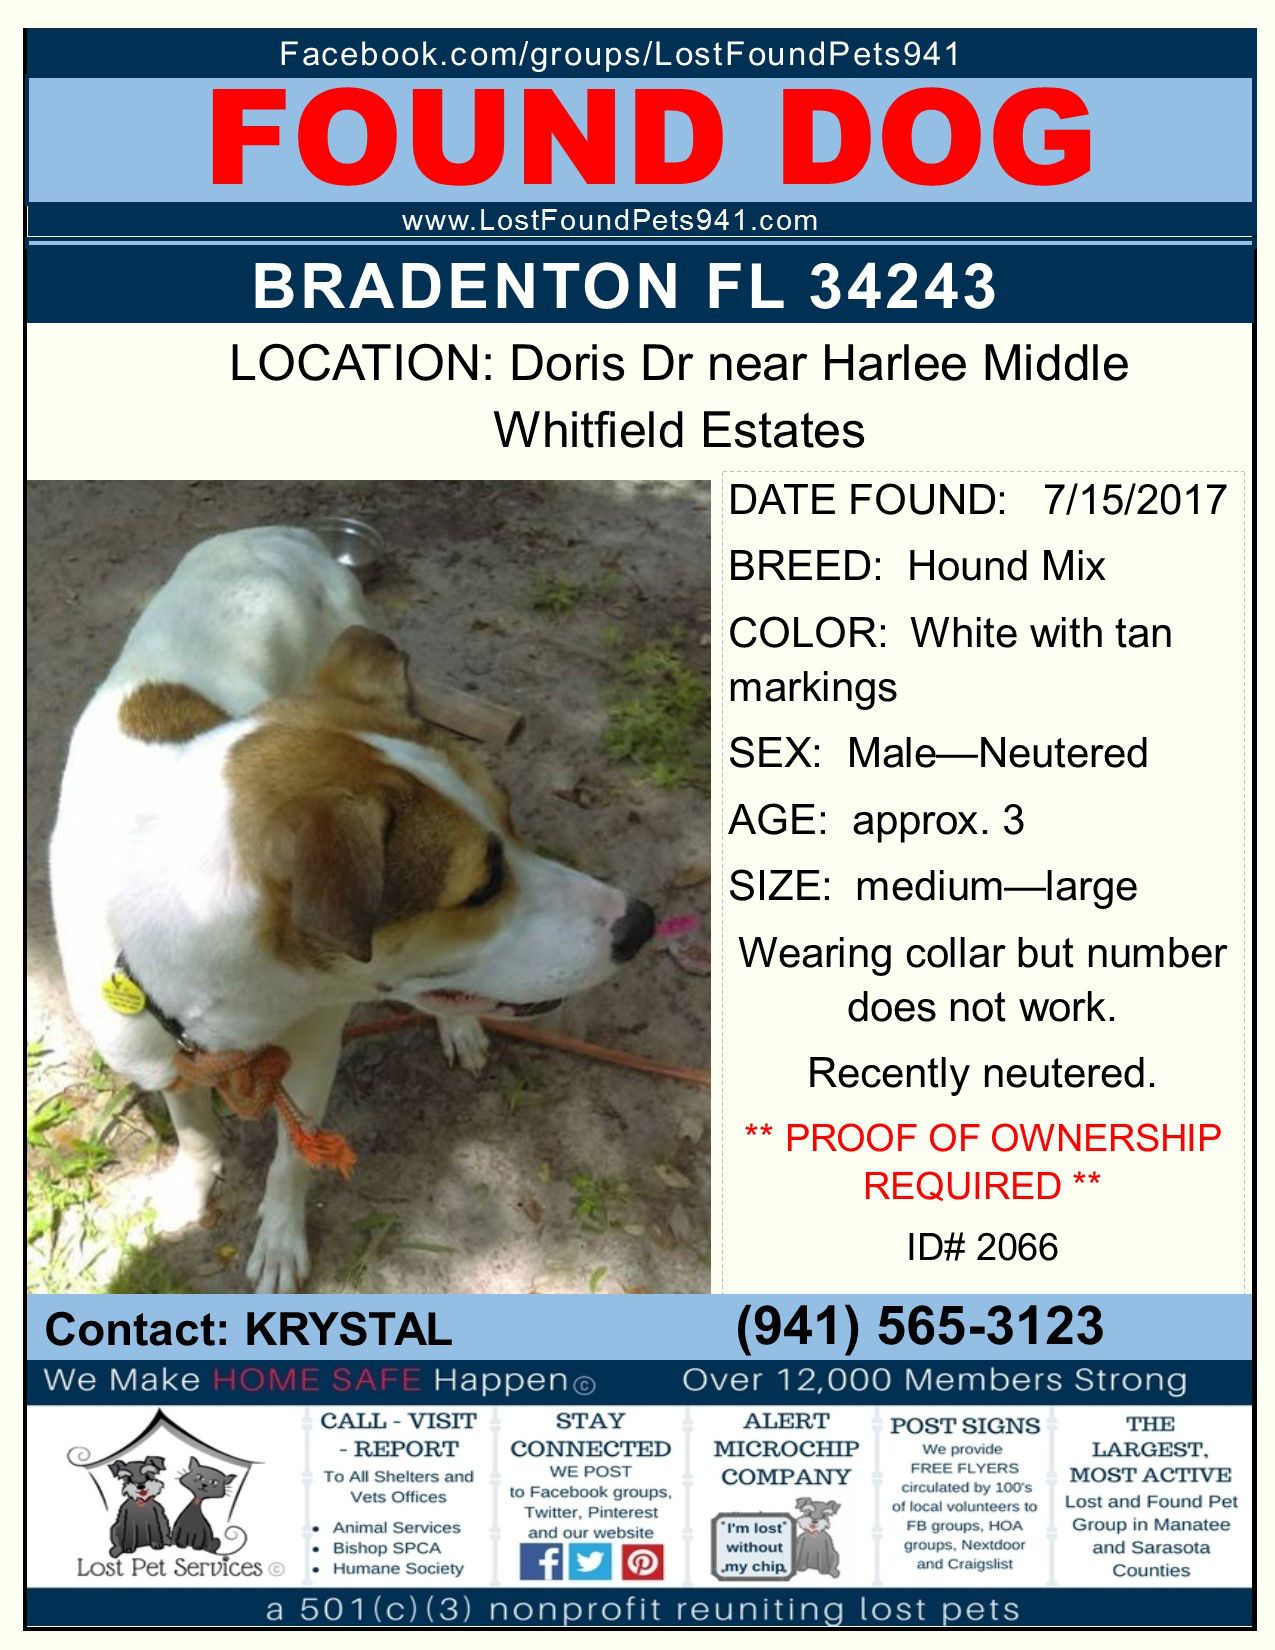 Do You Know Me Found Dog Missingpets Hound Mix Bradenton Fl 34243 Lostfoundpets941 Losing A Pet Pets Manatee County